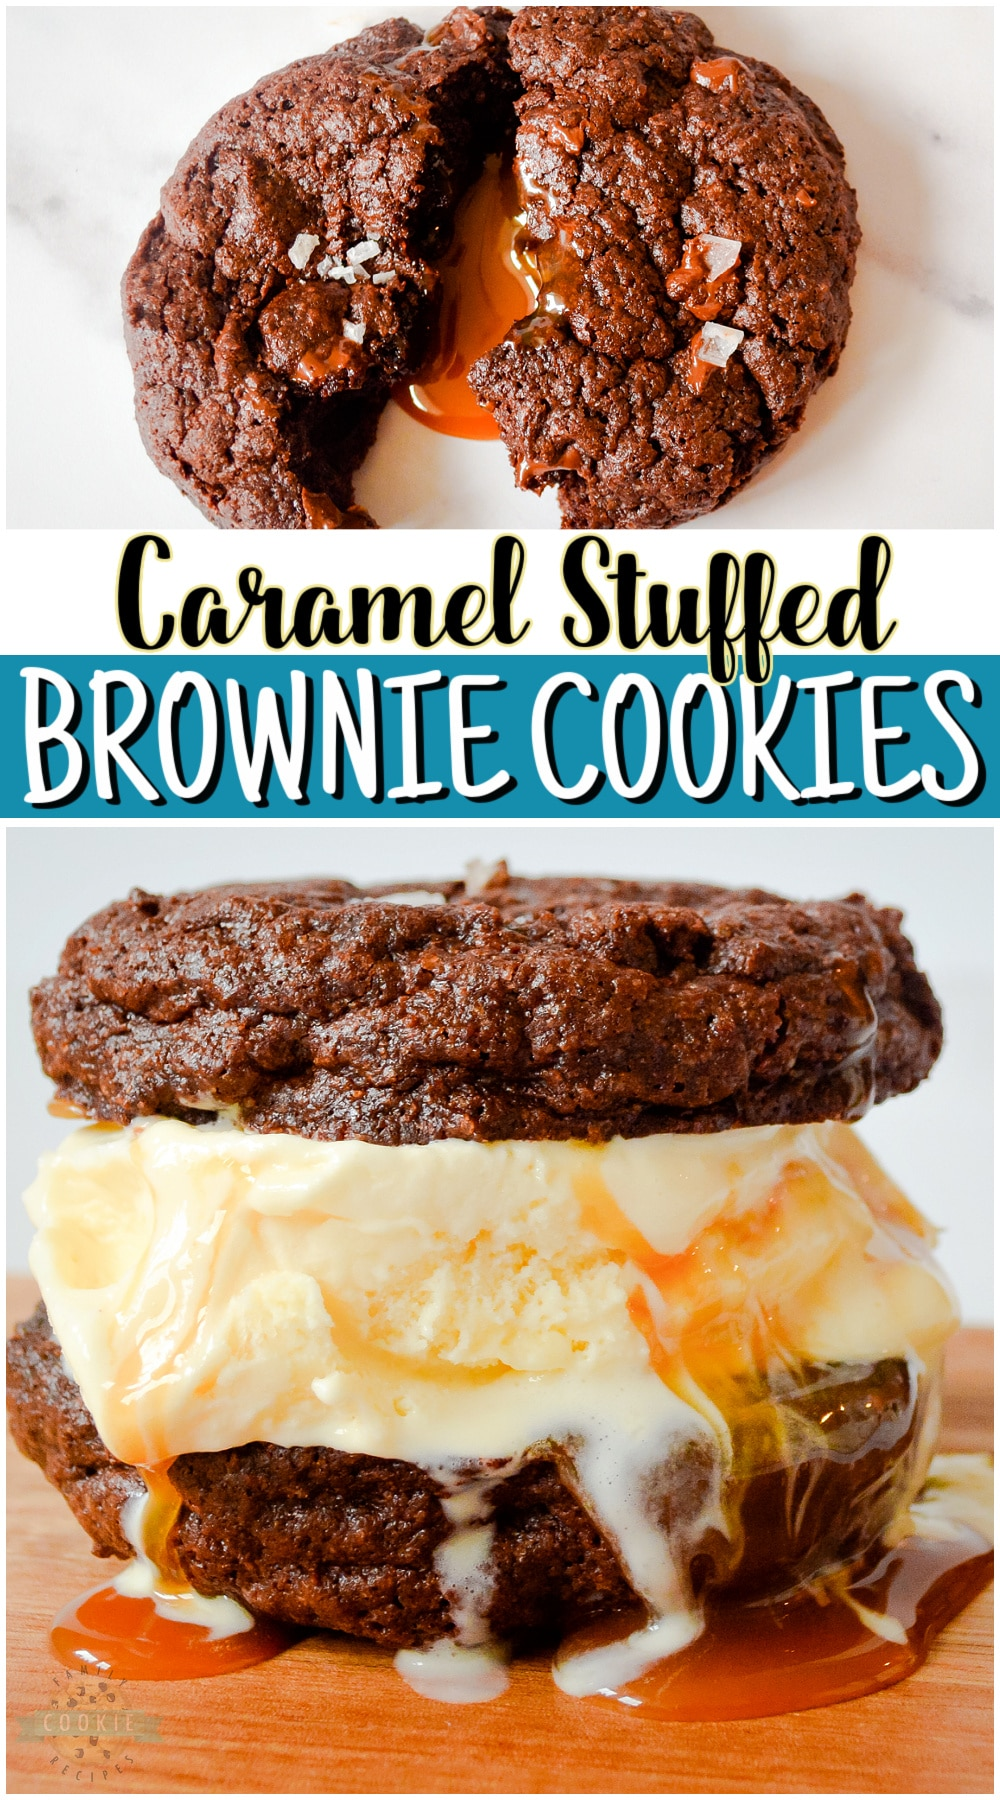 Caramel Brownie Cookies made with a brownie mix & stuffed with buttery soft caramels. Big, indulgent chocolate cookies with great flavors, especially with a sprinkle of sea salt on top! via @buttergirls